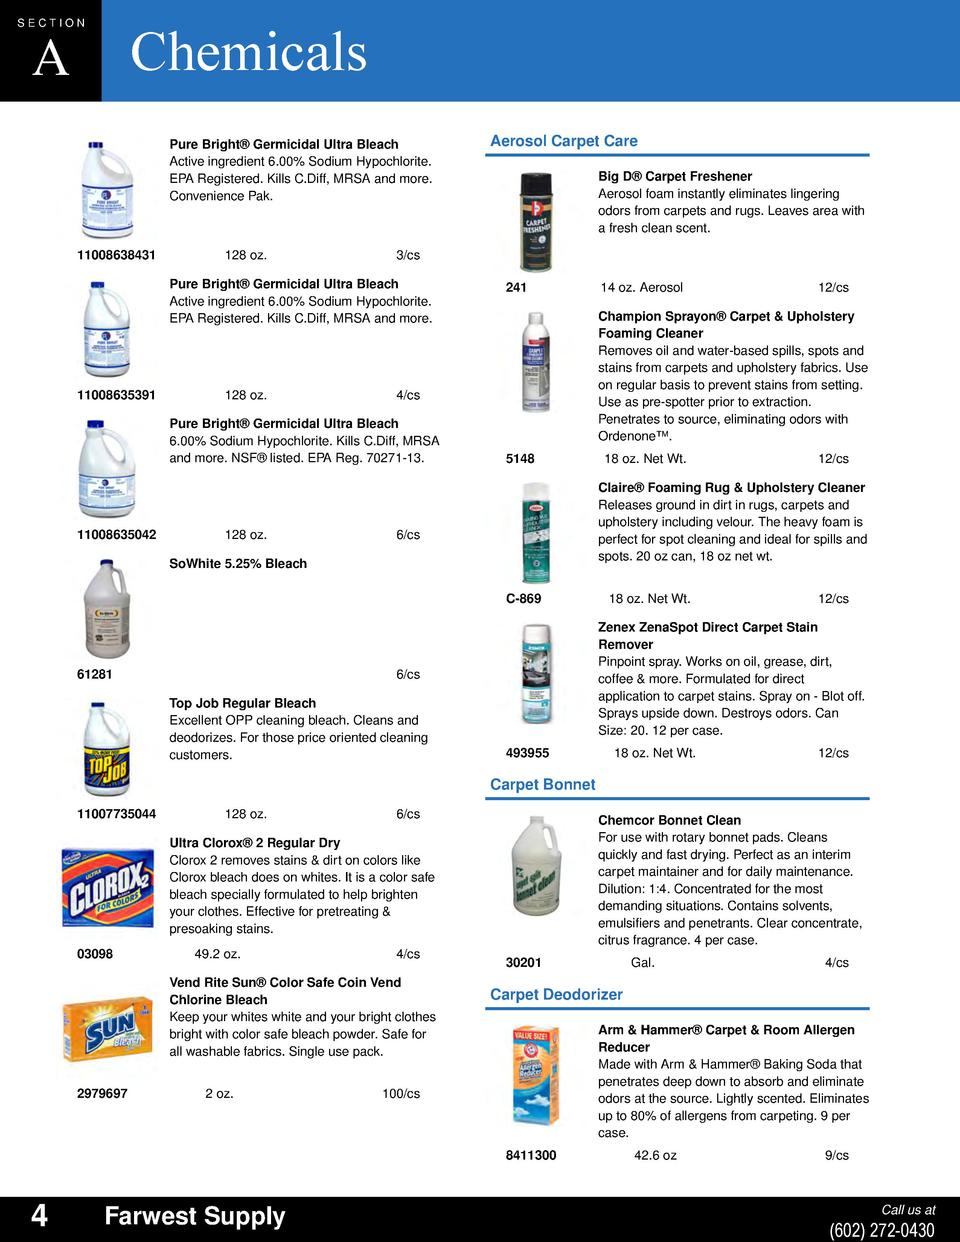 English Catalog Fitti Rainbow Regular S 12x12 12 Bags Section Chemicals A Pure Bright Germicidal Ultra Bleach Active Ingredient 600 Sodium Hypochlorite Epa Registered